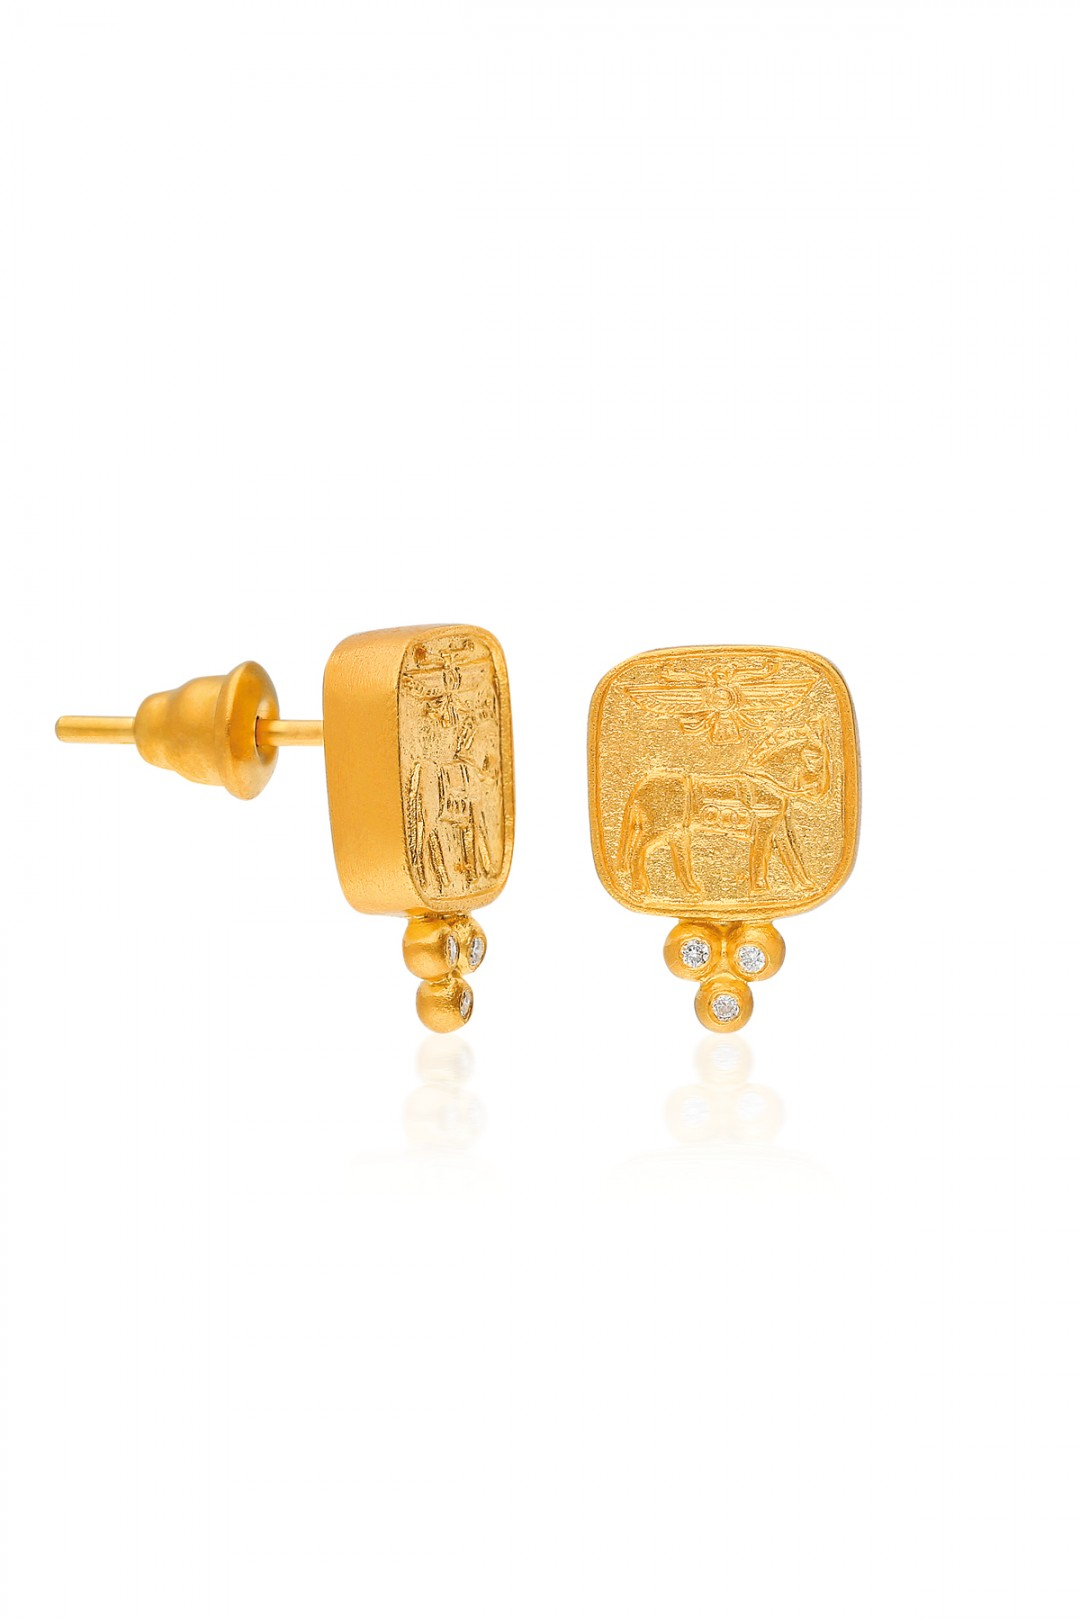 ANCIENT HORSE, WING AND DIAMOND MINI BALLS EARRING